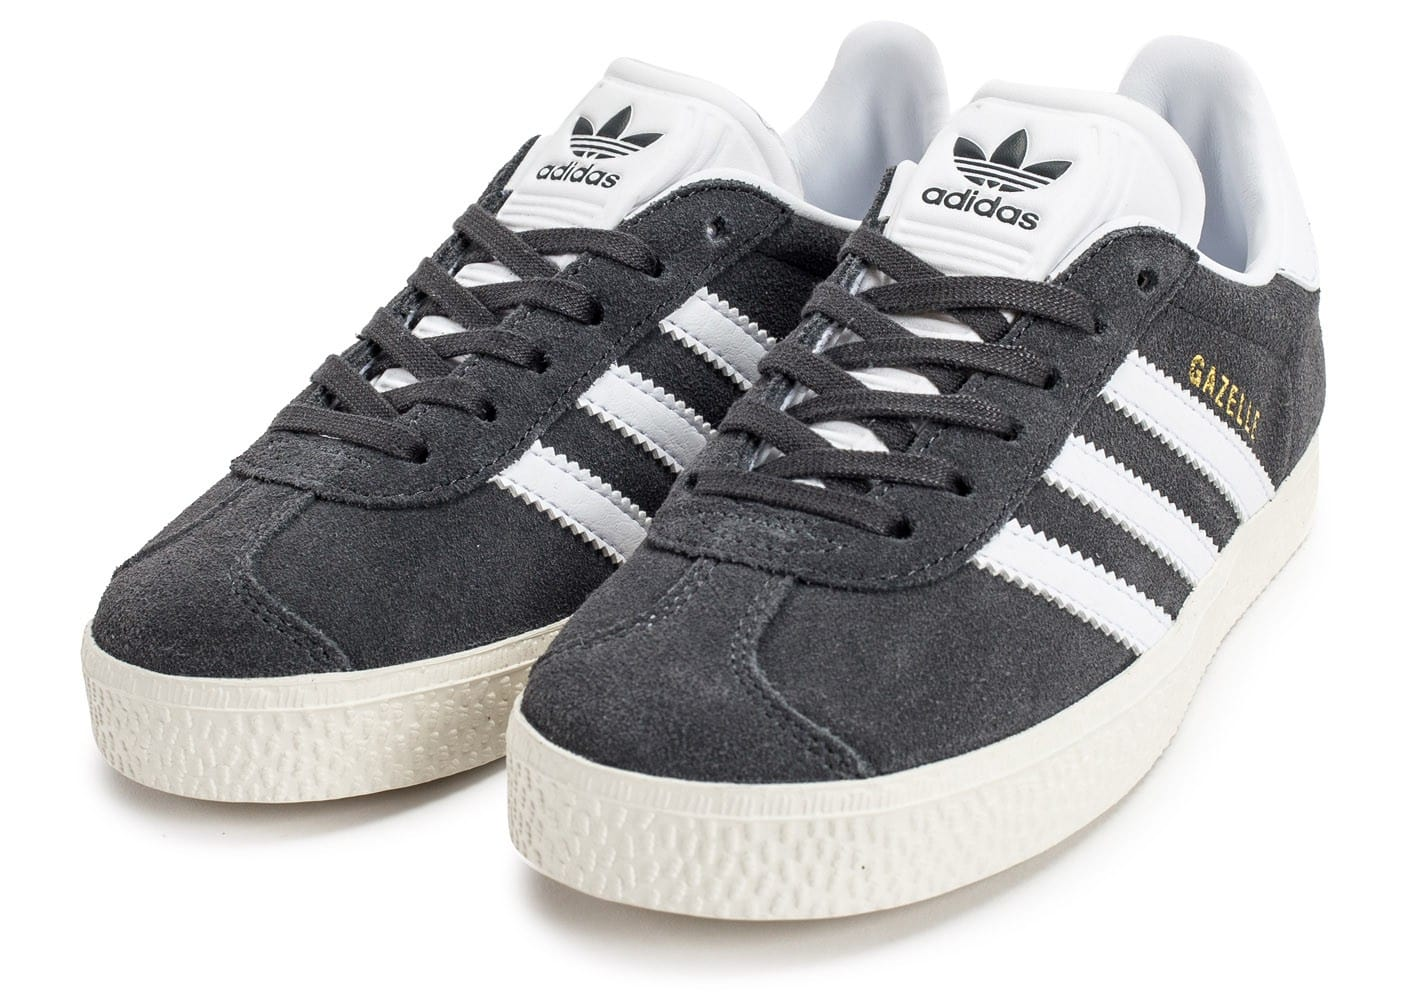 taille 40 3774d 75ef0 adidas Gazelle 2 Enfant grise - Chaussures adidas - Chausport